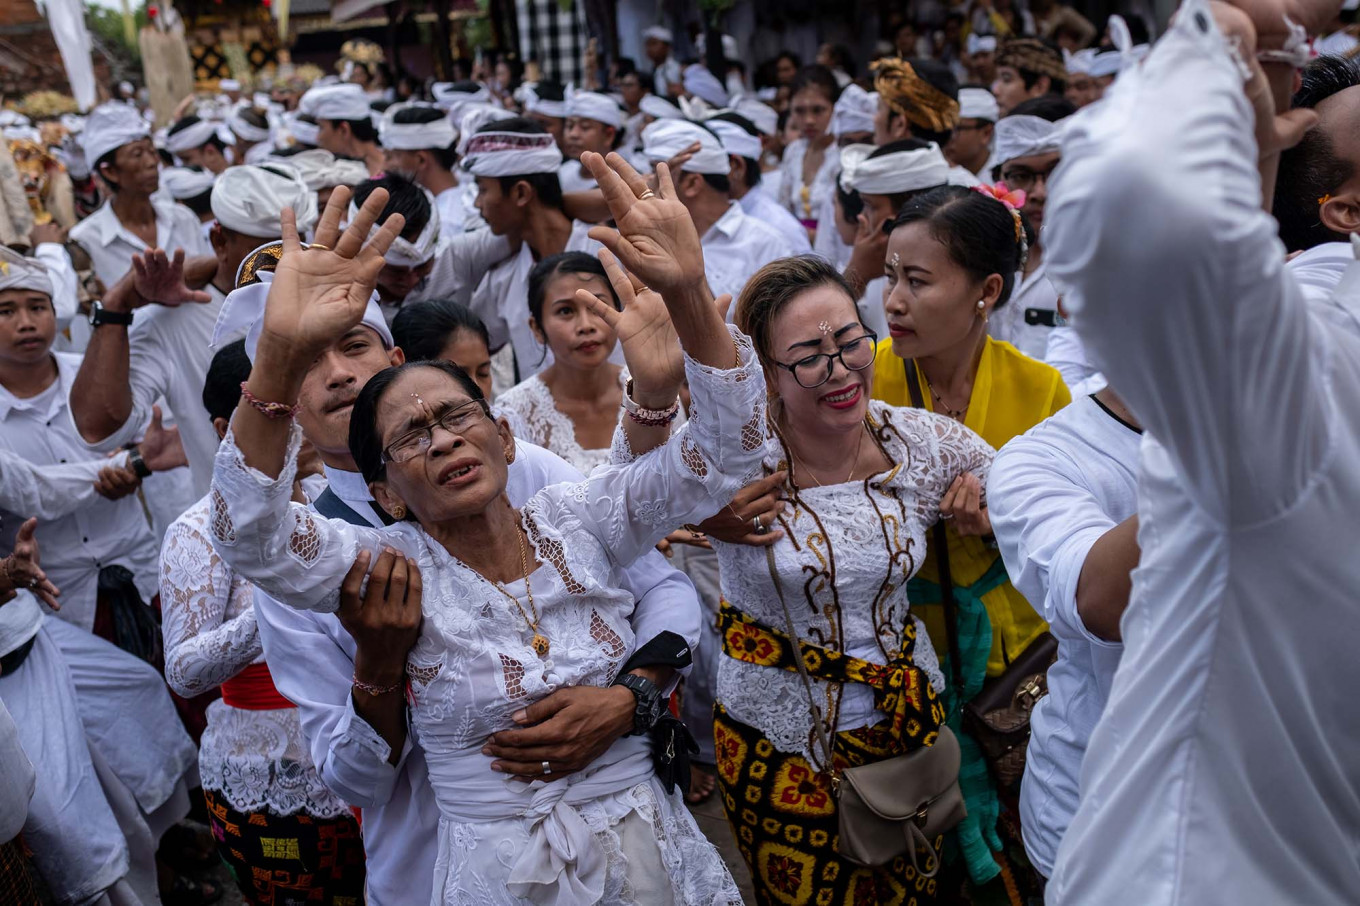 Balinese women become unconscious during the sacred ritual of Ngerebong at the Petilan temple on Jan. 13, in Denpasar, Bali. This ritual is said to achieve harmony between humans, nature and God. JP/Agung Parameswara